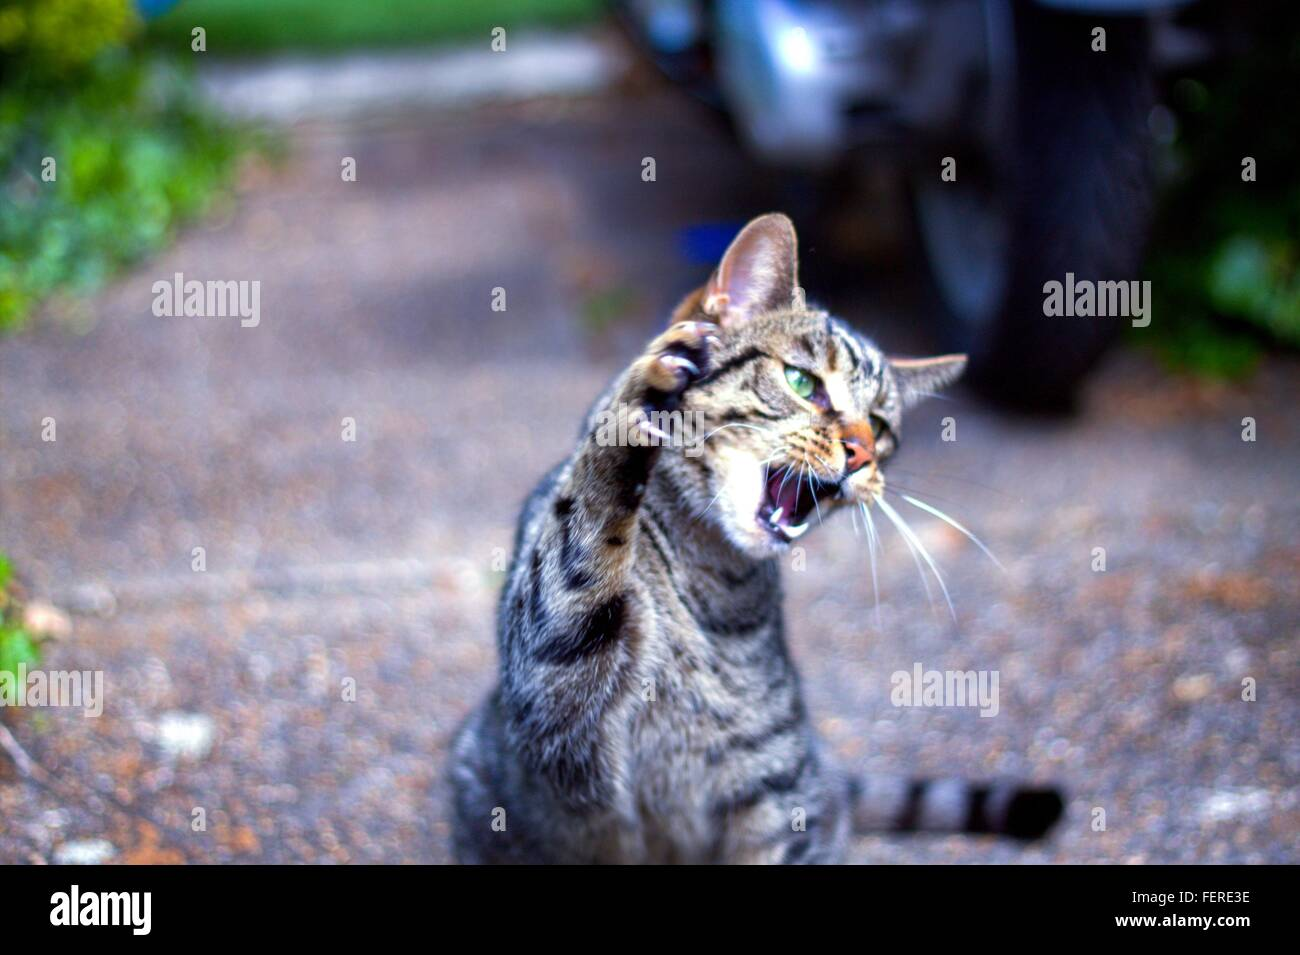 Close-Up Of Angry Tabby Cat Outdoors - Stock Image